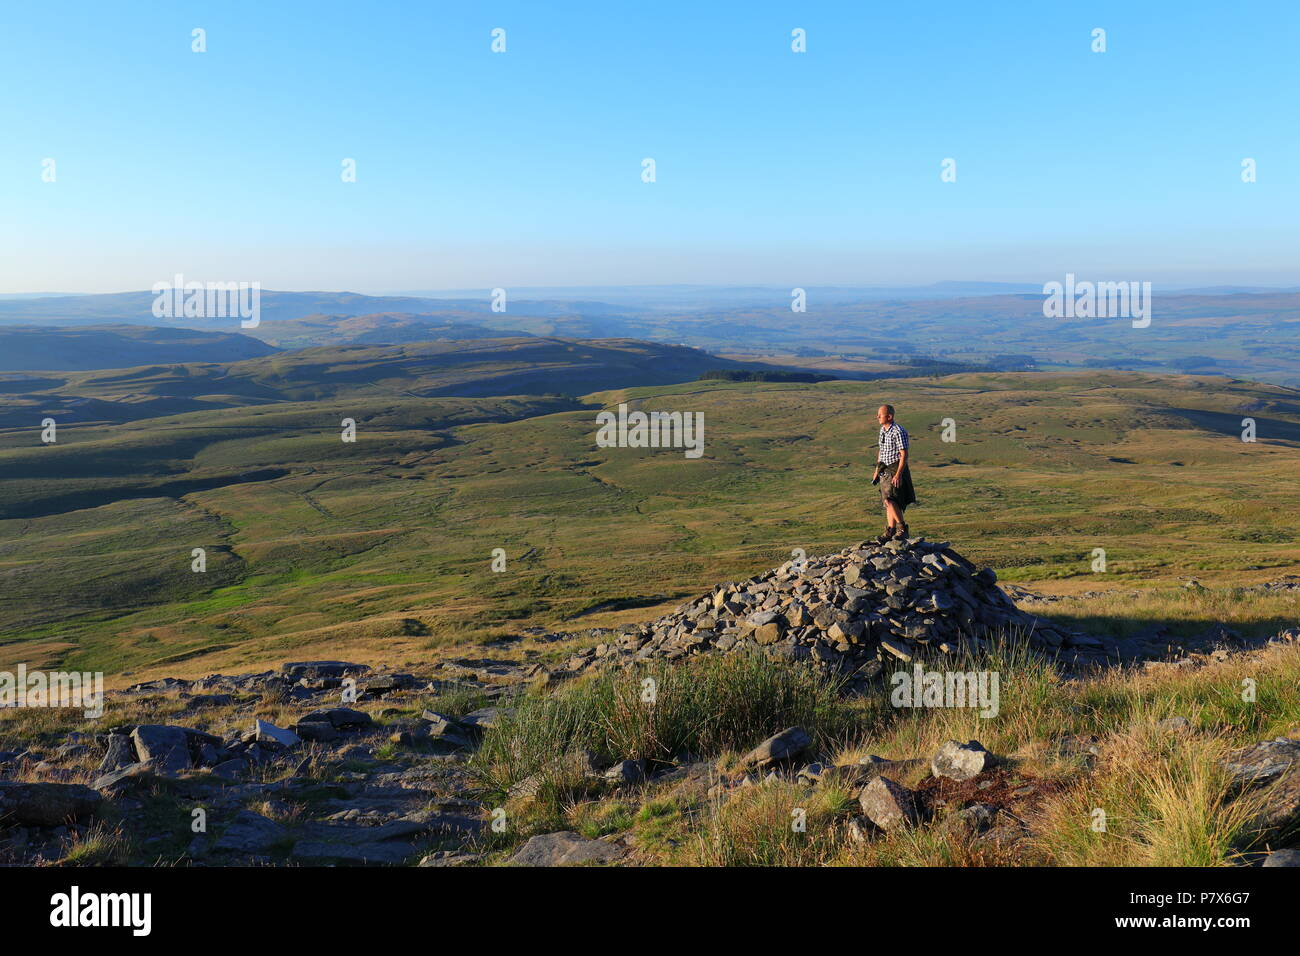 Myself doing a bit of hiking in the Yorkshire Dales National Park. I took this while walking up Ingleborough Mountain near Clapham. - Stock Image